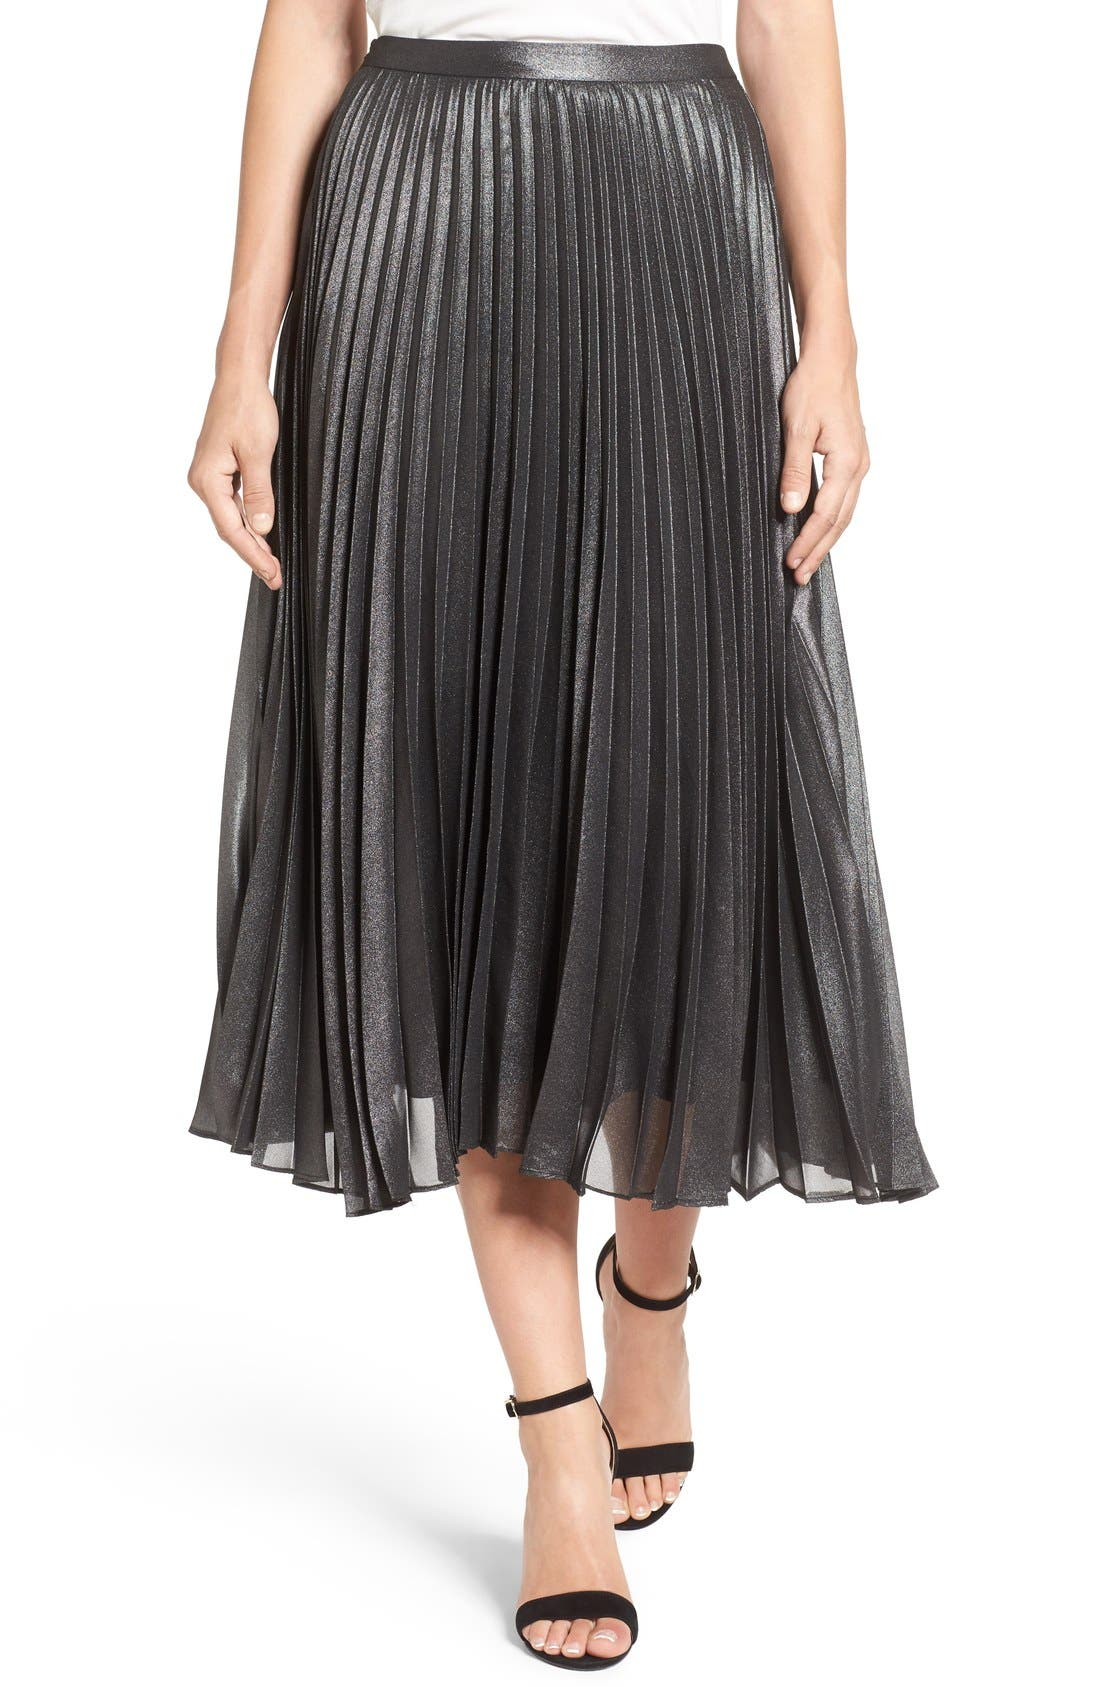 Alternate Image 1 Selected - Halogen® Pleated Lurex® Midi Skirt (Regular & Petite)